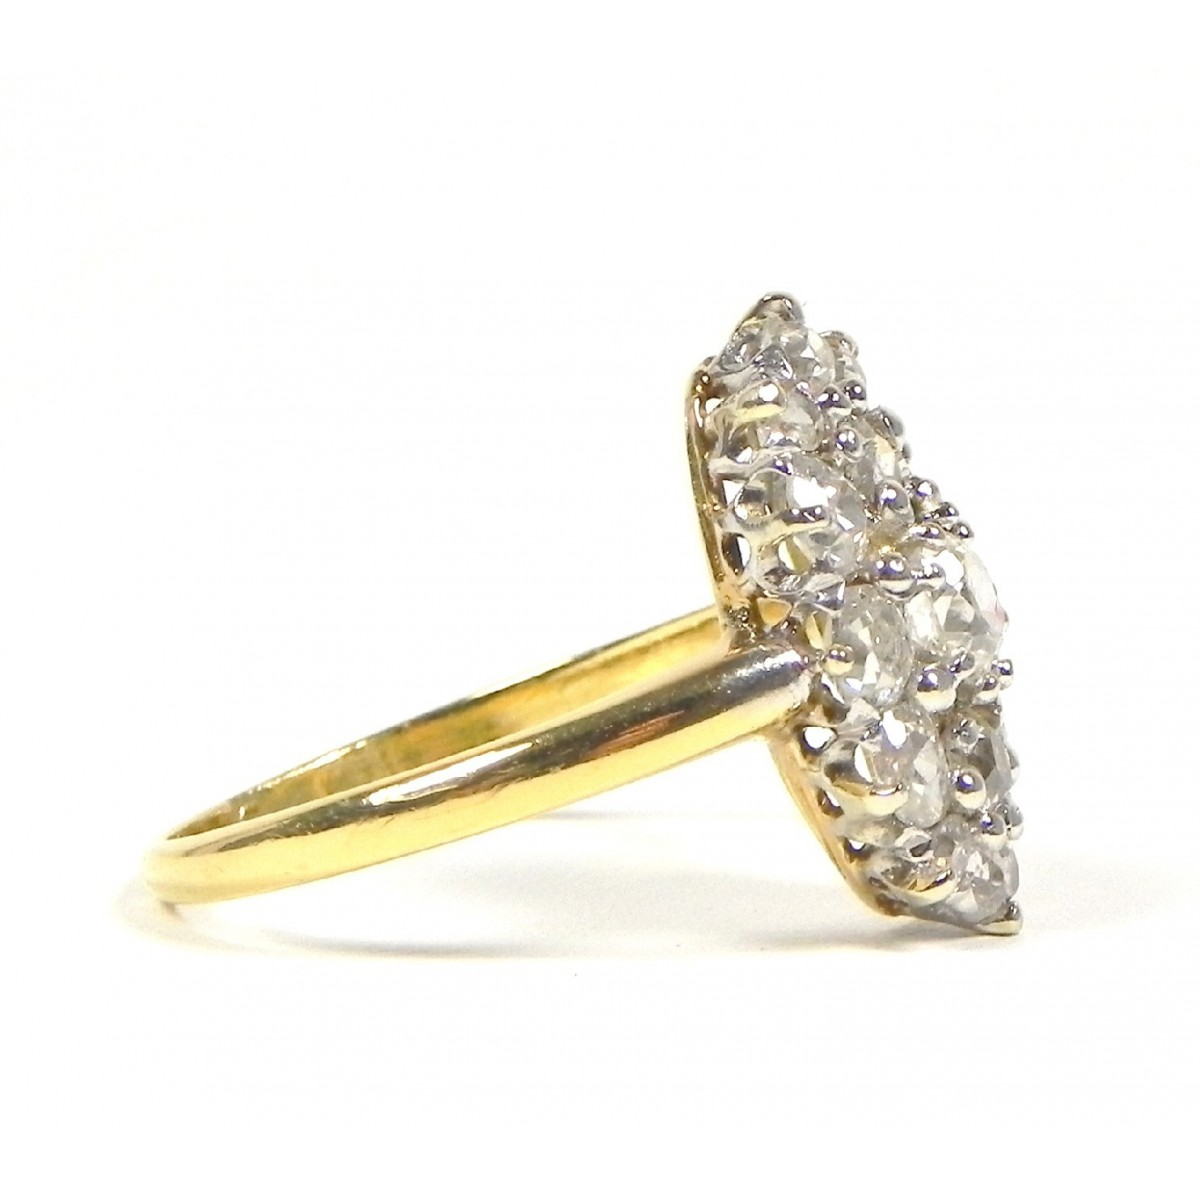 Superbe marquise ancienne en or jaune 750 et diamants muse or for Marquise ancienne